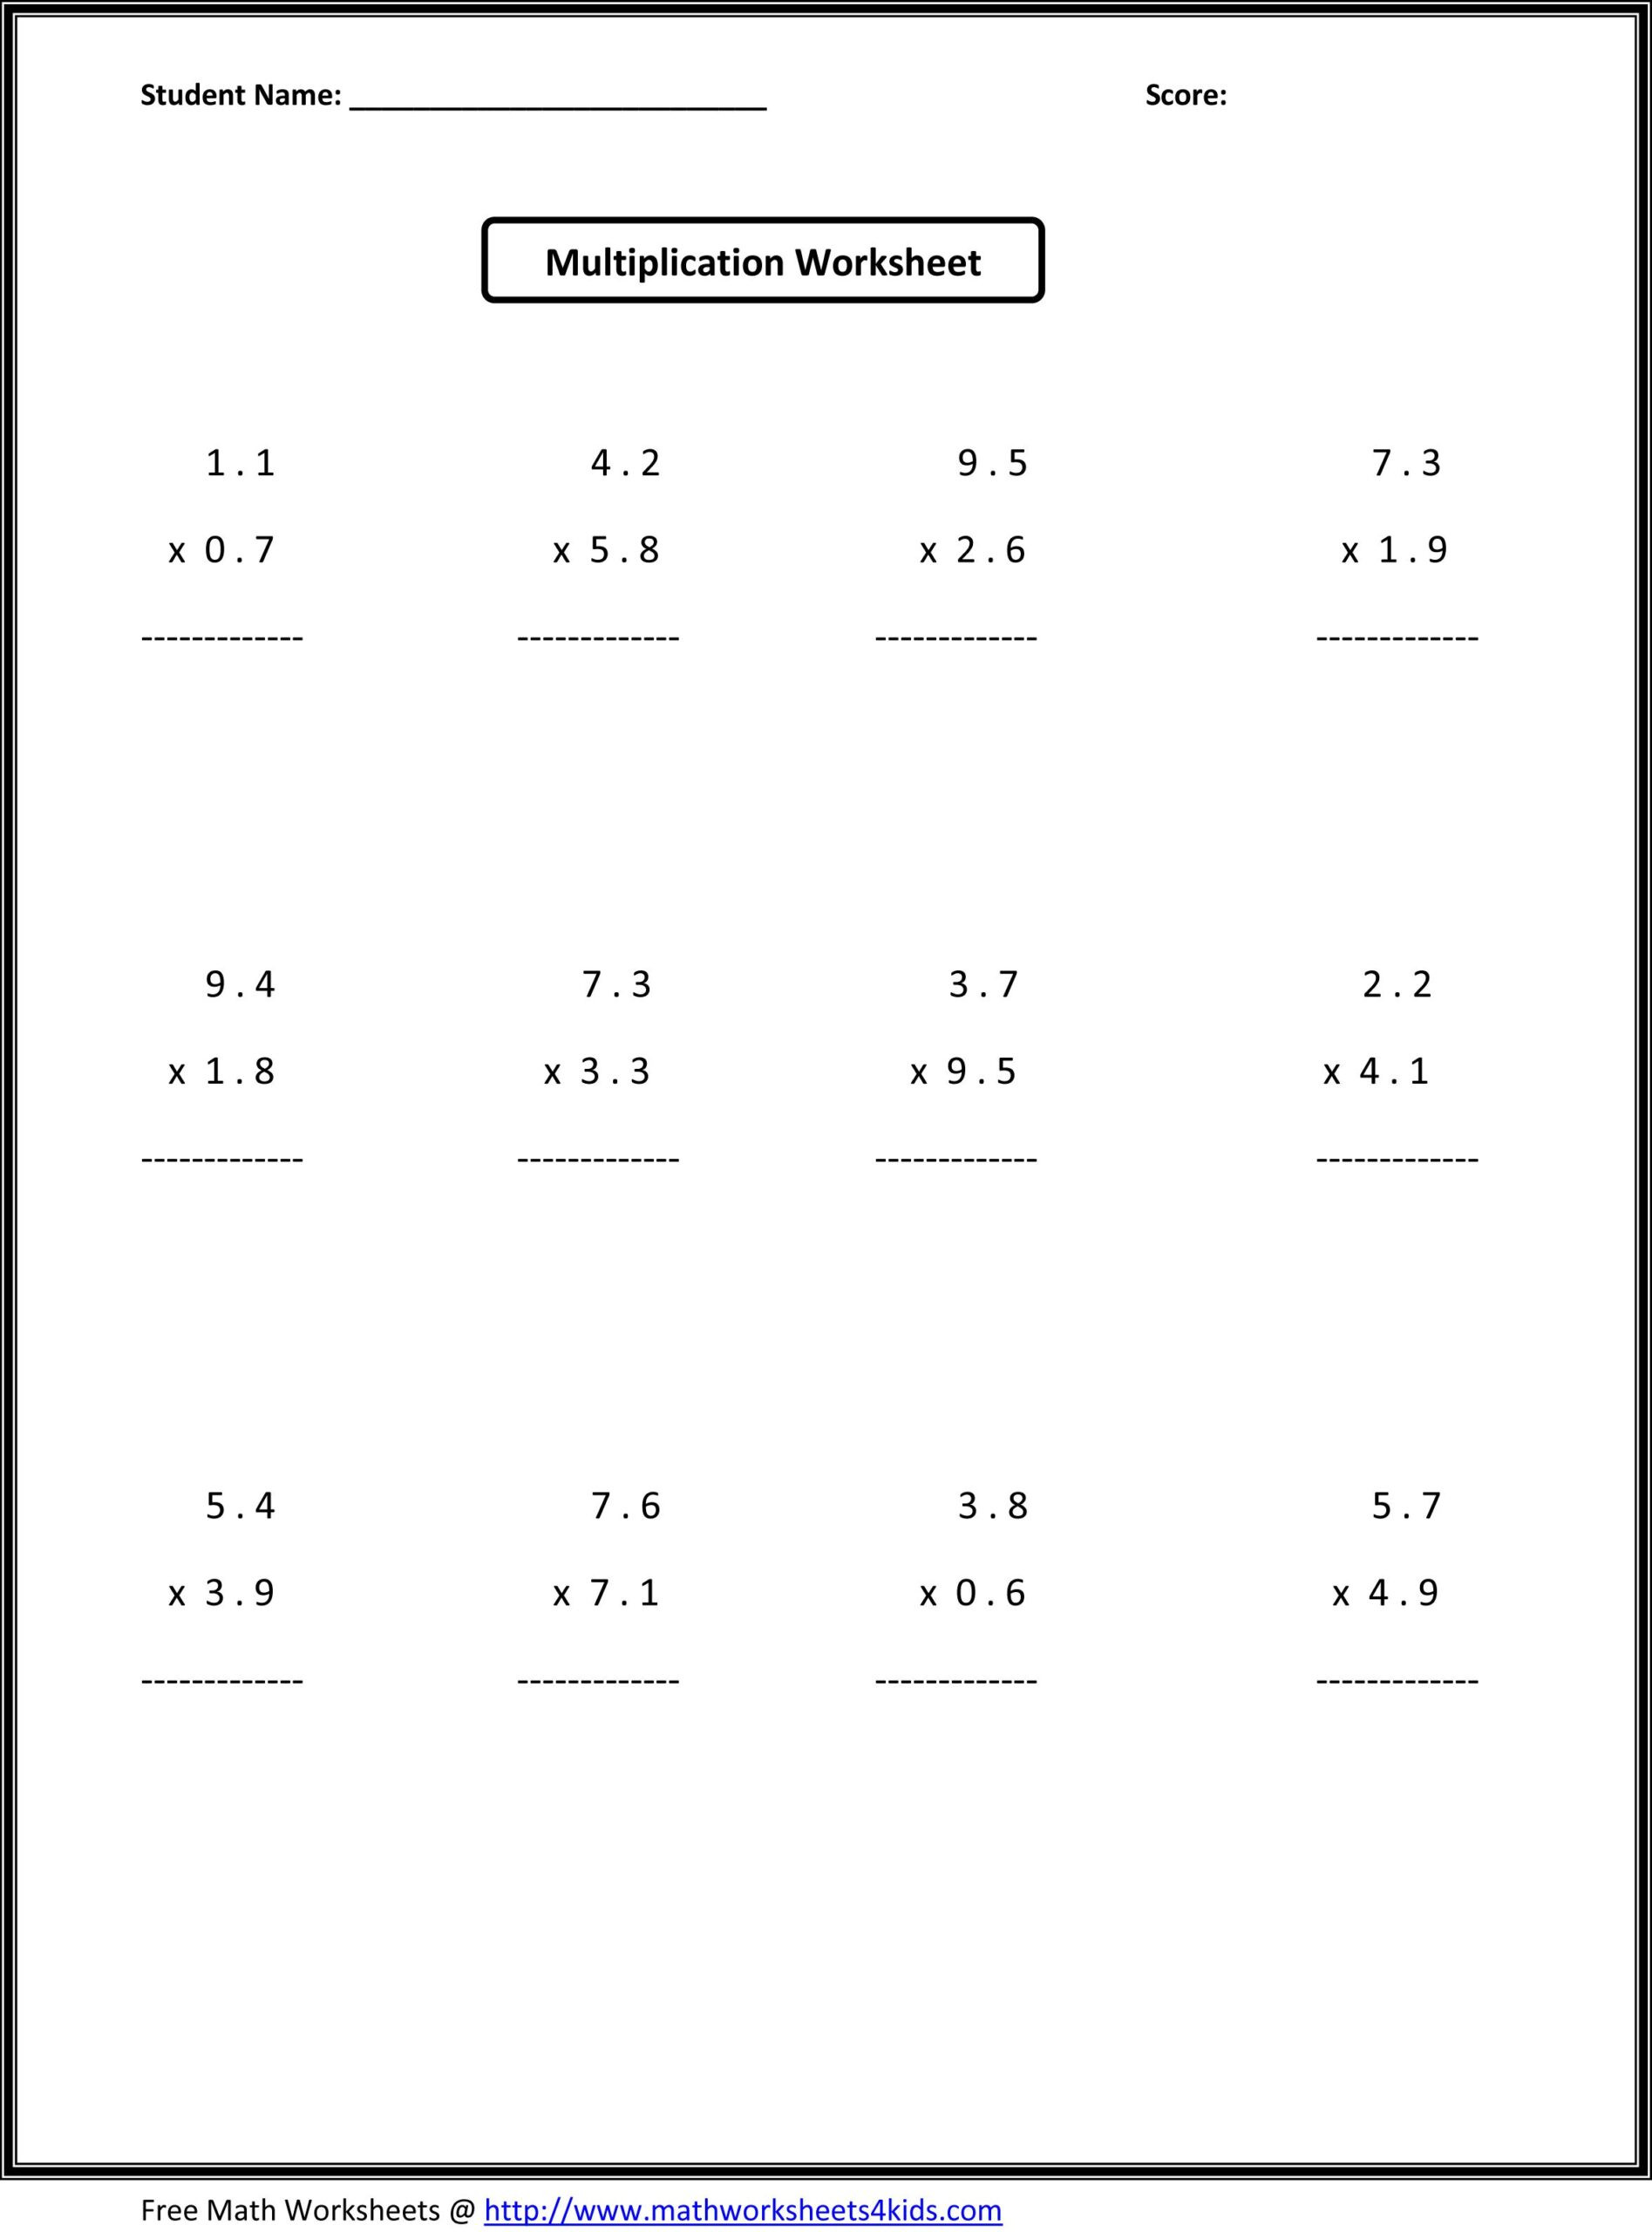 Algebra 2 Printable Worksheets